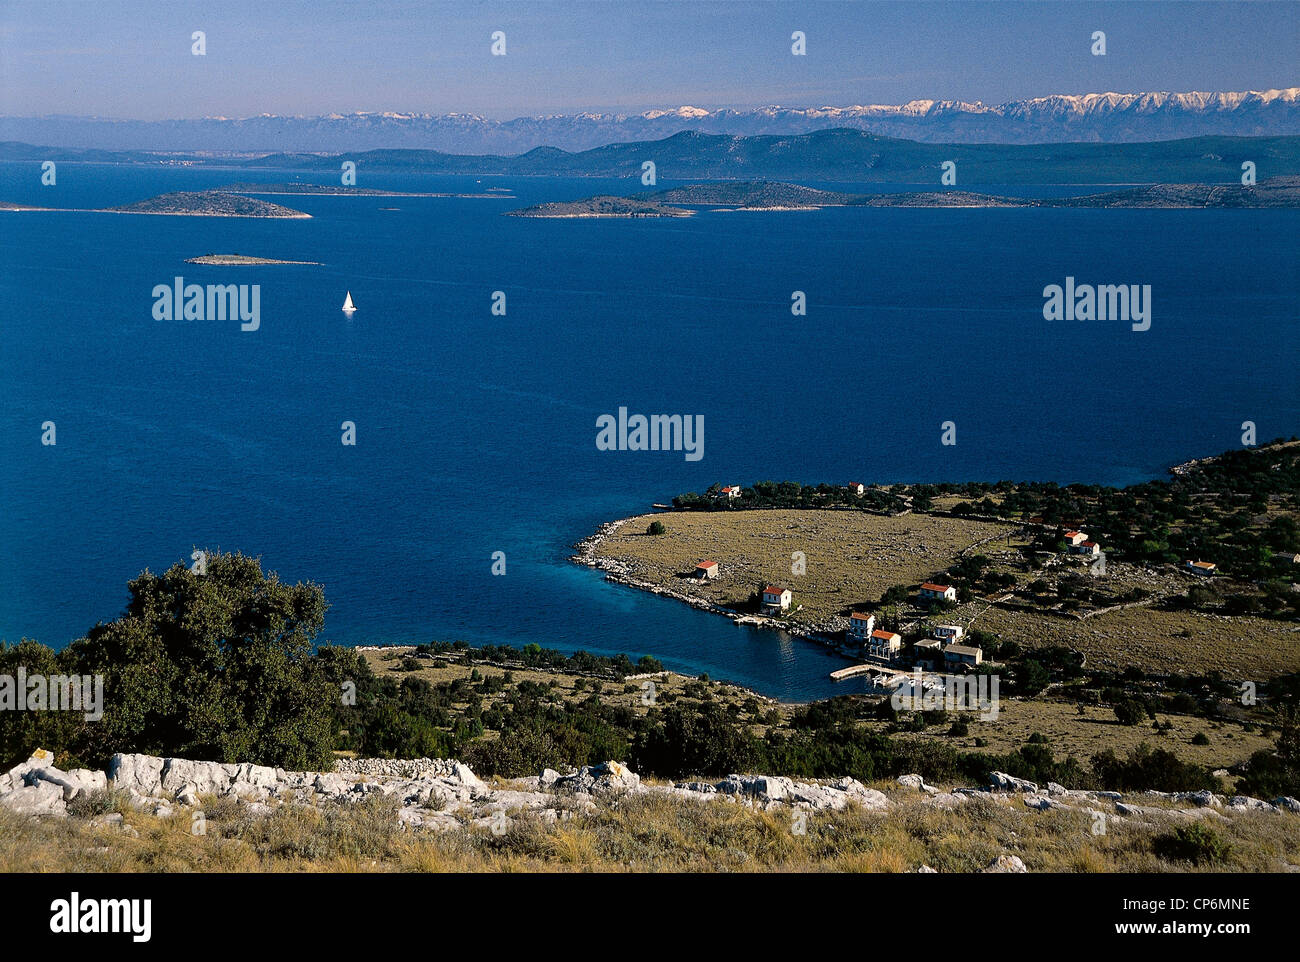 Croatia - Dalmatia - Island Zut - Bizikovicanel Adriatic sea with some islands and Velebit mountains in the background - Stock Image